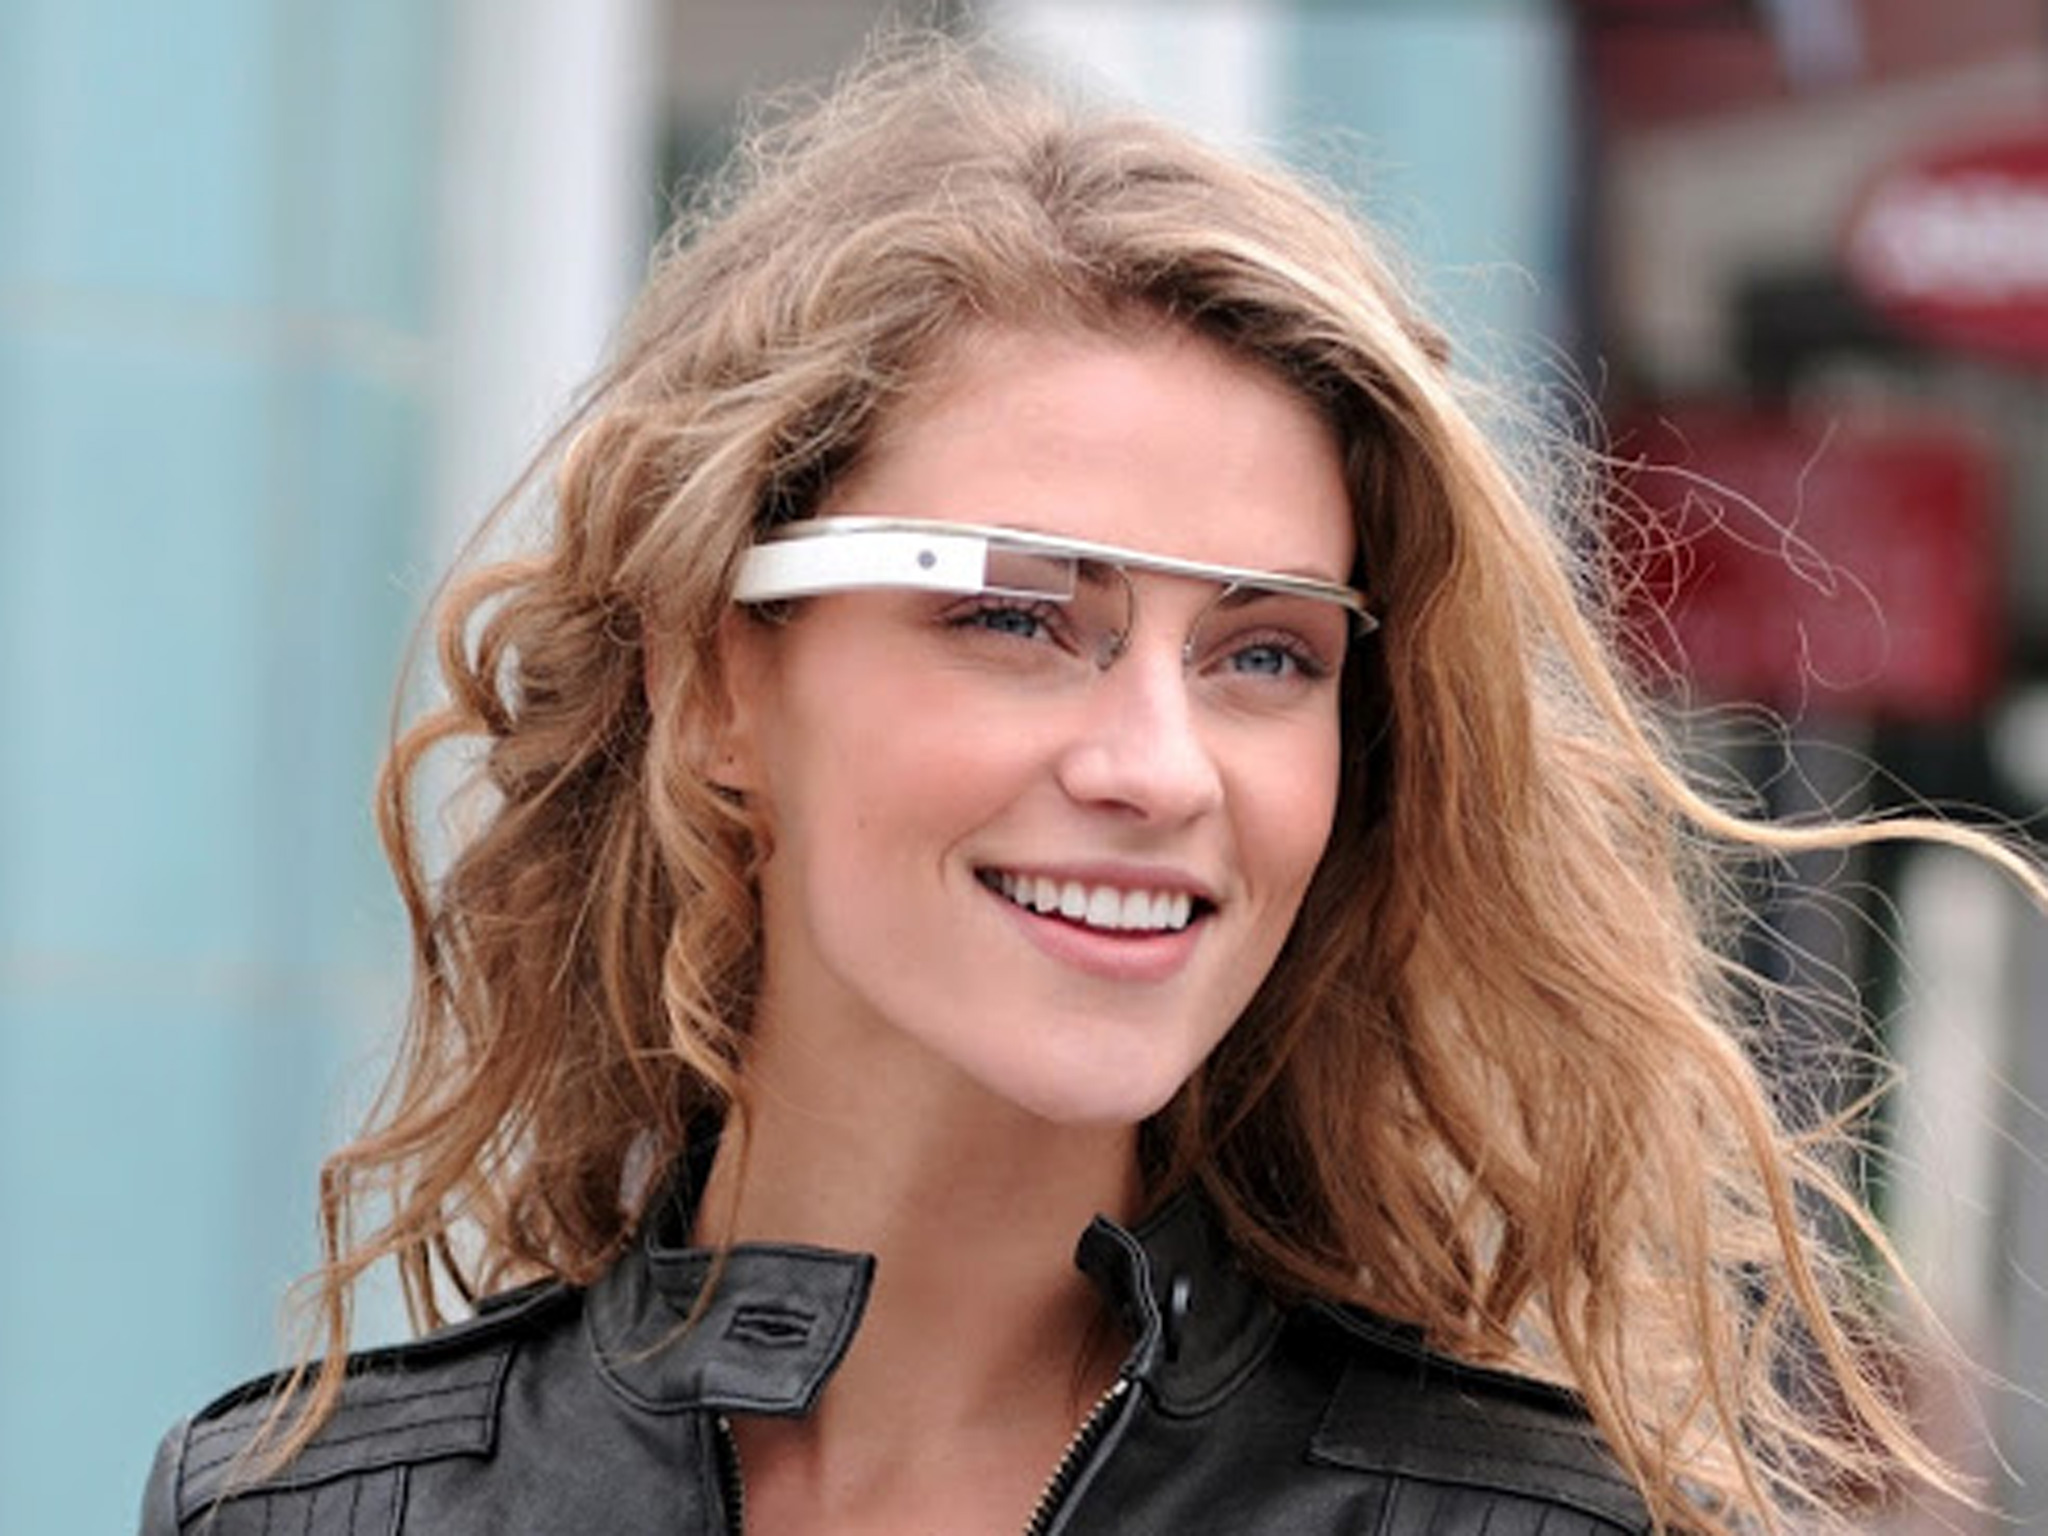 Girl-Wearing-Google-Glass